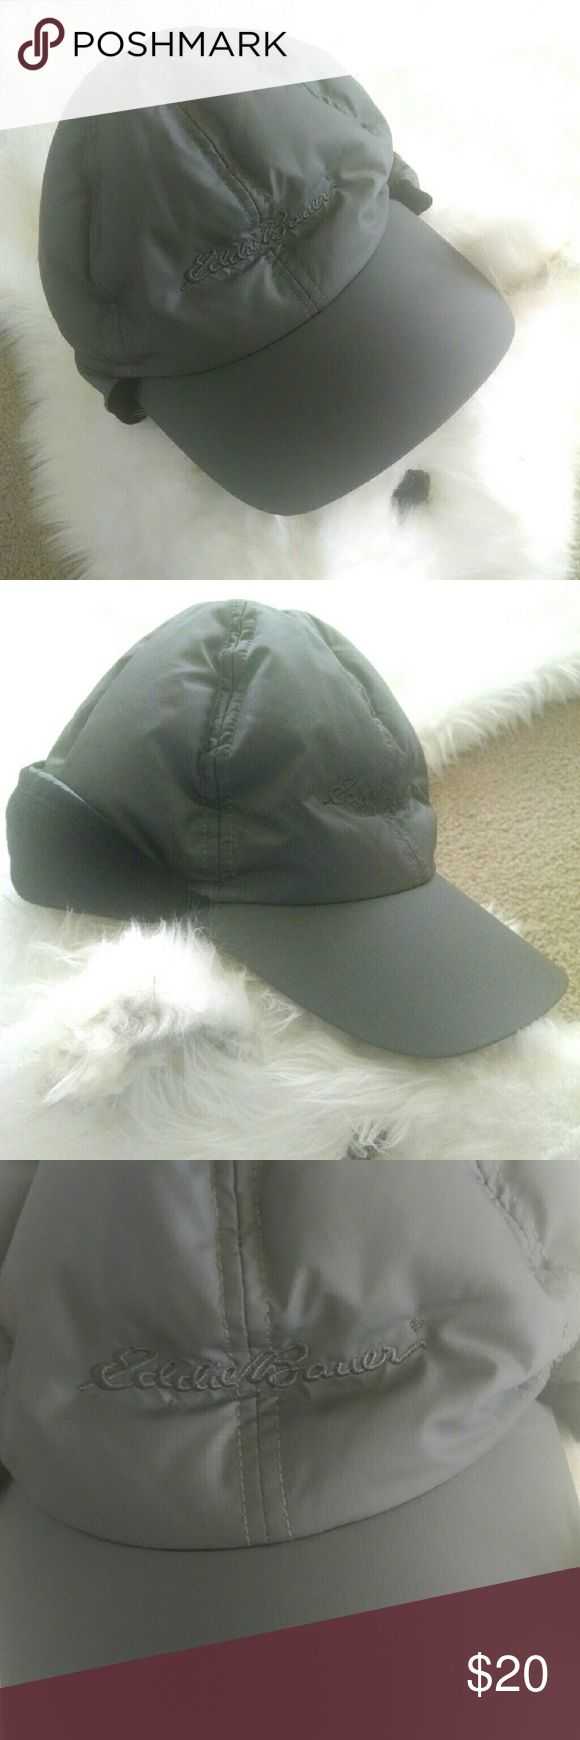 Eddie Bauer Earflap Winter Hat S/M Grey goose down-filled, fleece-lined baseball cap style hat. Can be worn with the ear flaps up or down. Non-adjustable, inside measures about 21 ??. ?In very good condition, just two light scuffs on the topside of the bill. Comes from a smoke free, pet free home. Eddie Bauer Accessories Hats